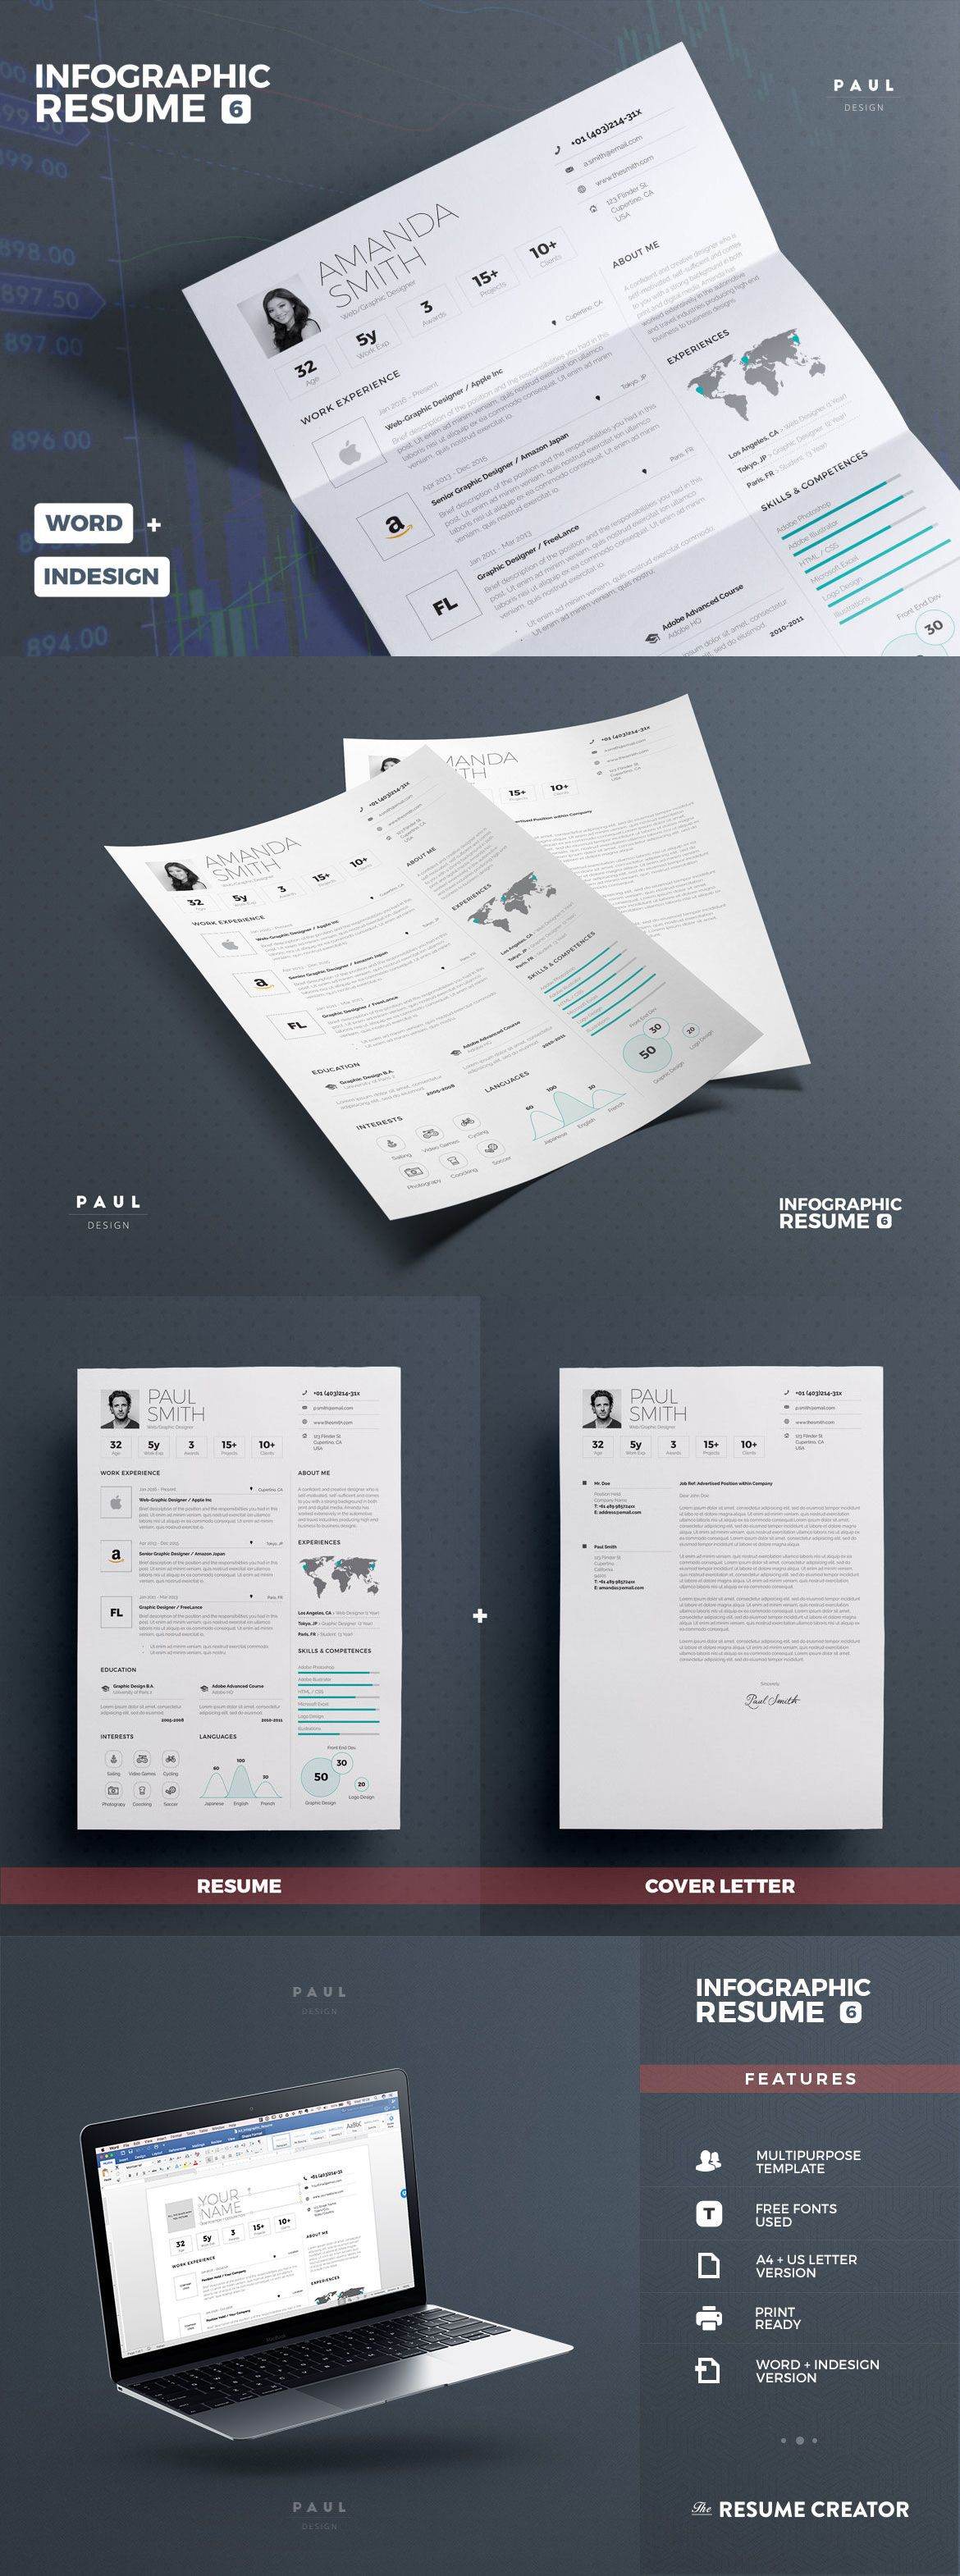 Infographic Resume/Cv Volume 6 by paolo6180 on Envato